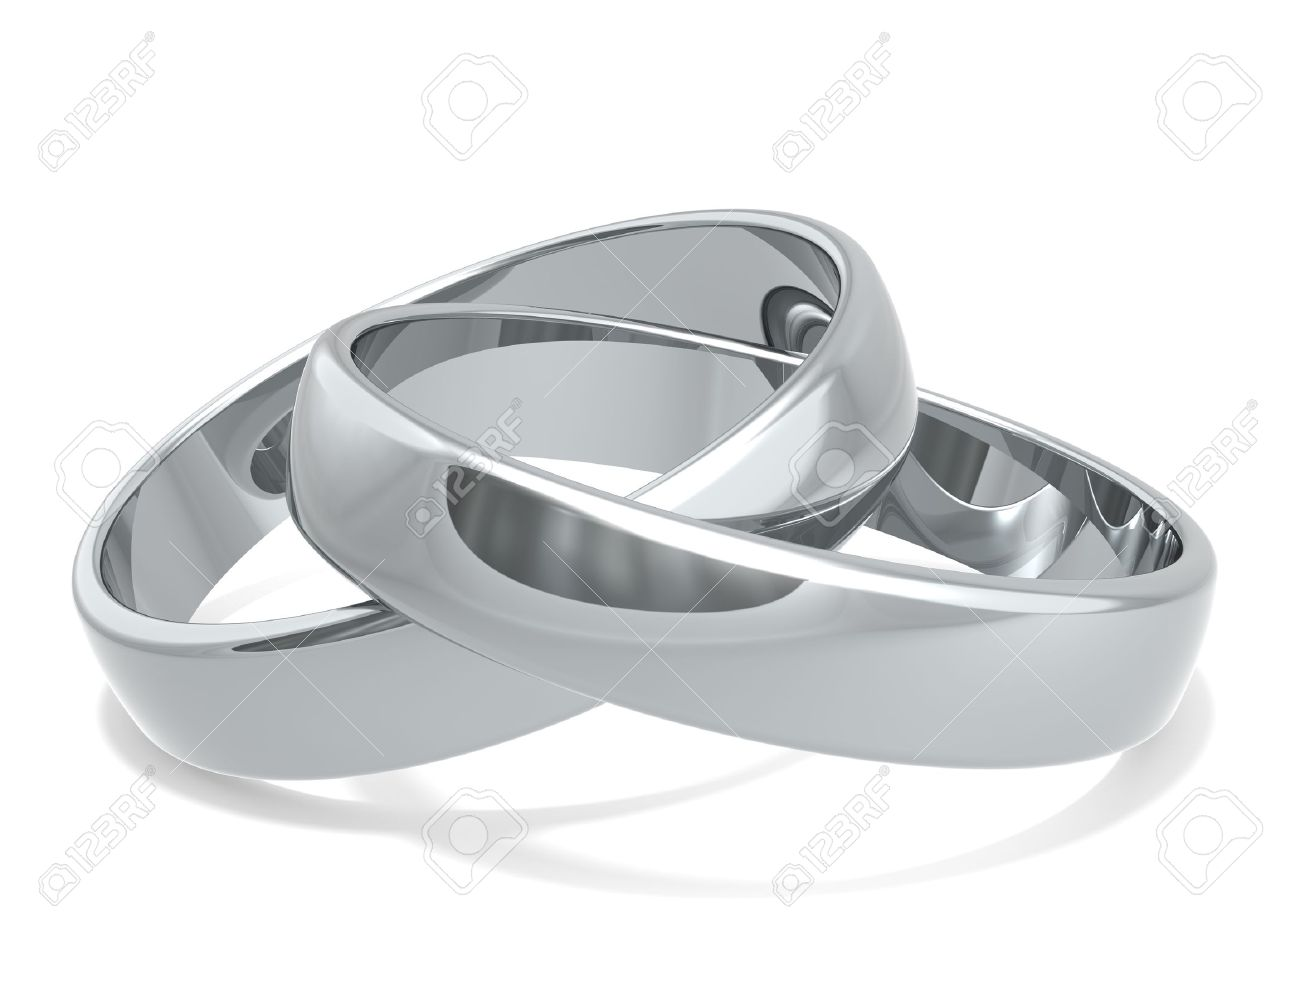 platinum wedding ring platinum diamond wedding bands platinum wedding ring Wedding rings of Platinum 2